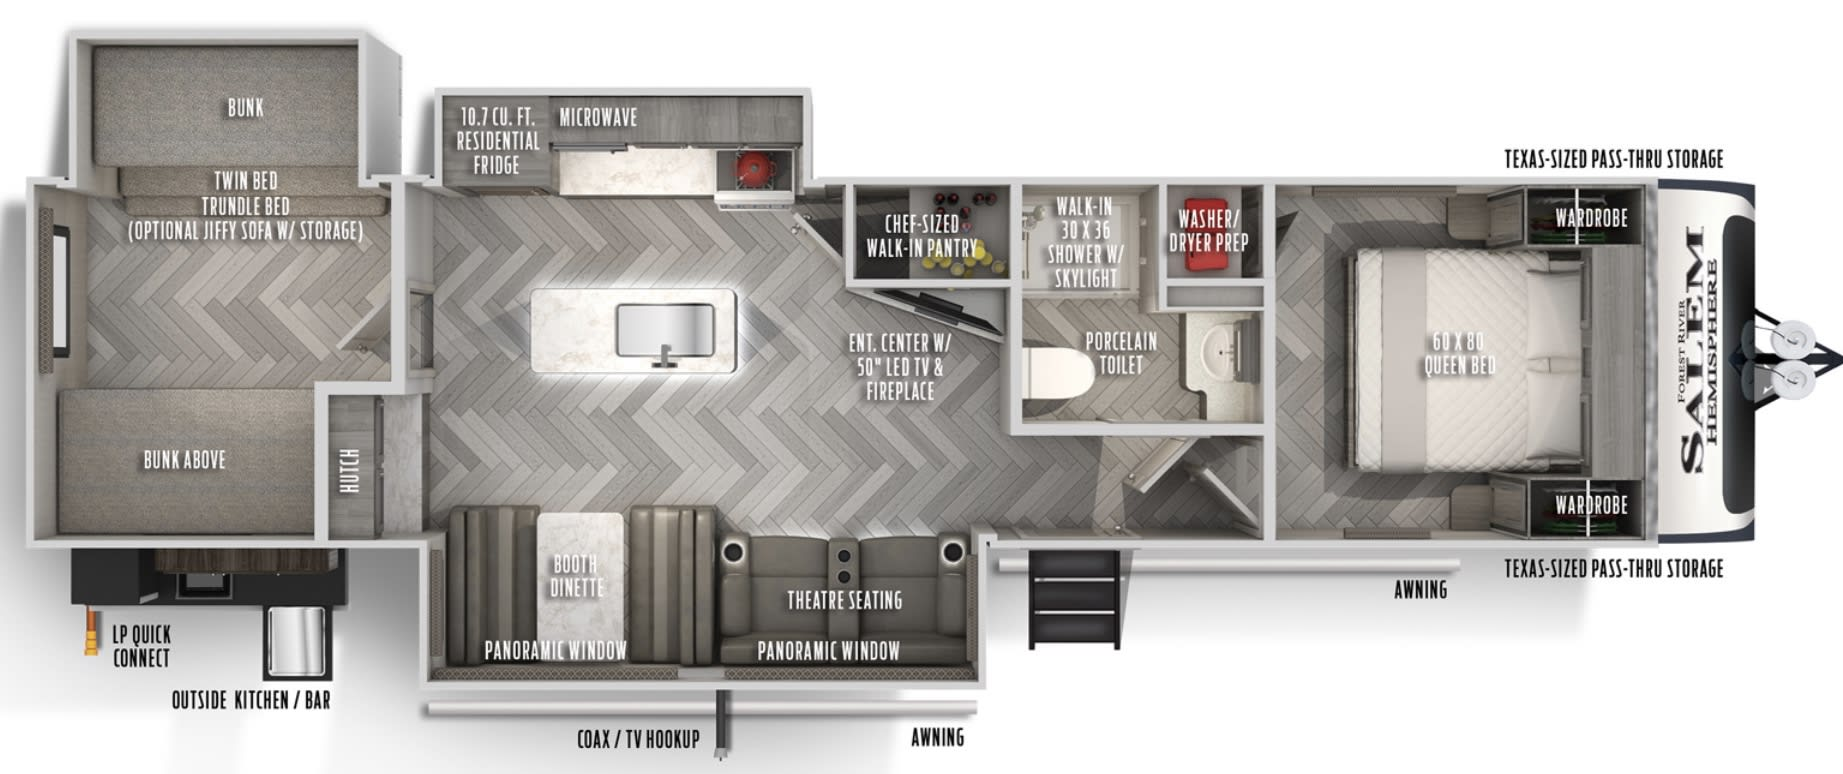 Amazing floorplan with seperate bunkhouse and master + rare washer/dryer!. Forest River Salem Hemisphere 2020